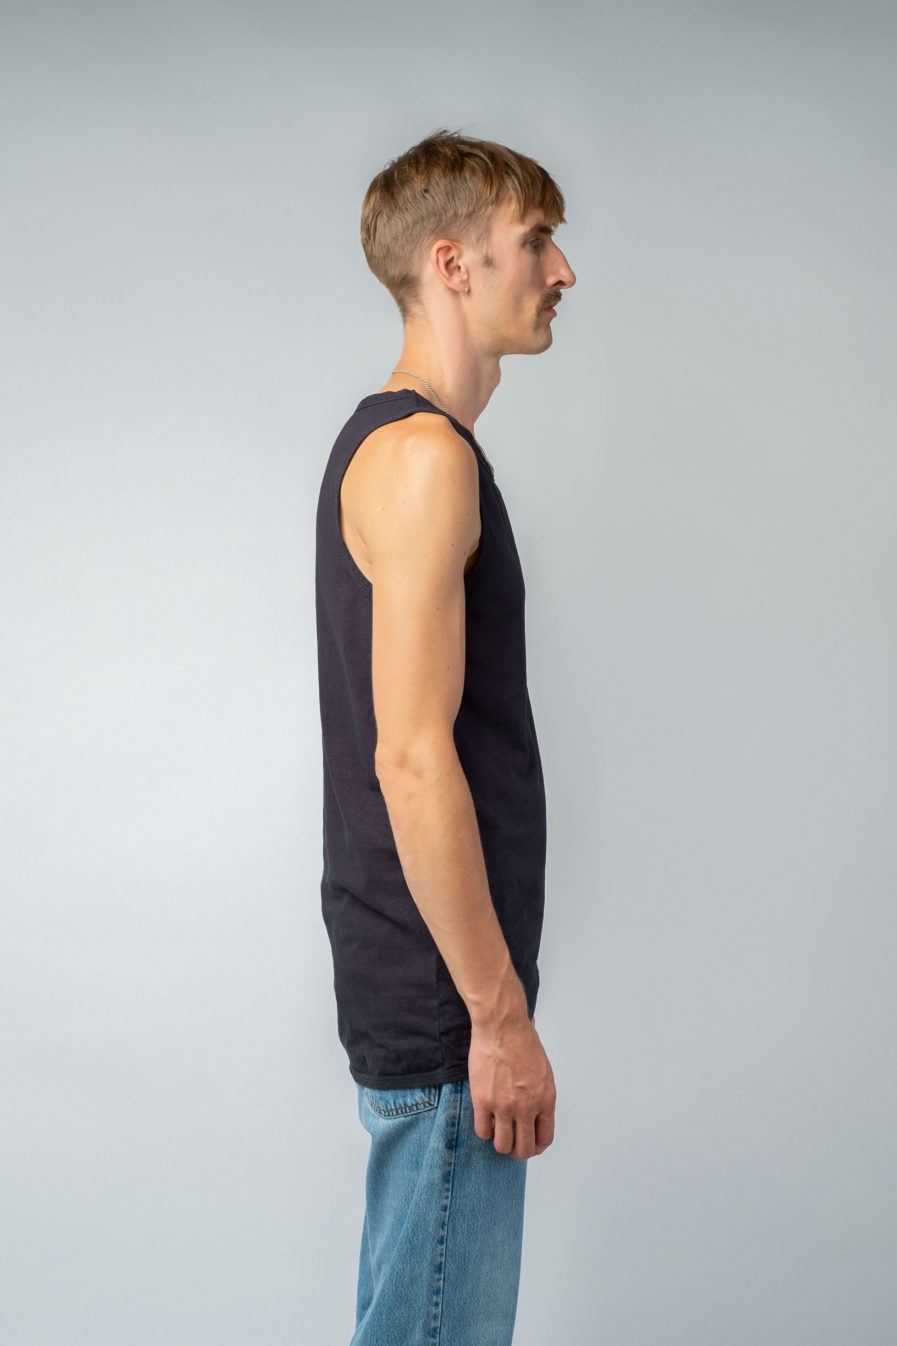 MAN unisex singlet tanktop hemp organic cotton WILLIE Carbon black side